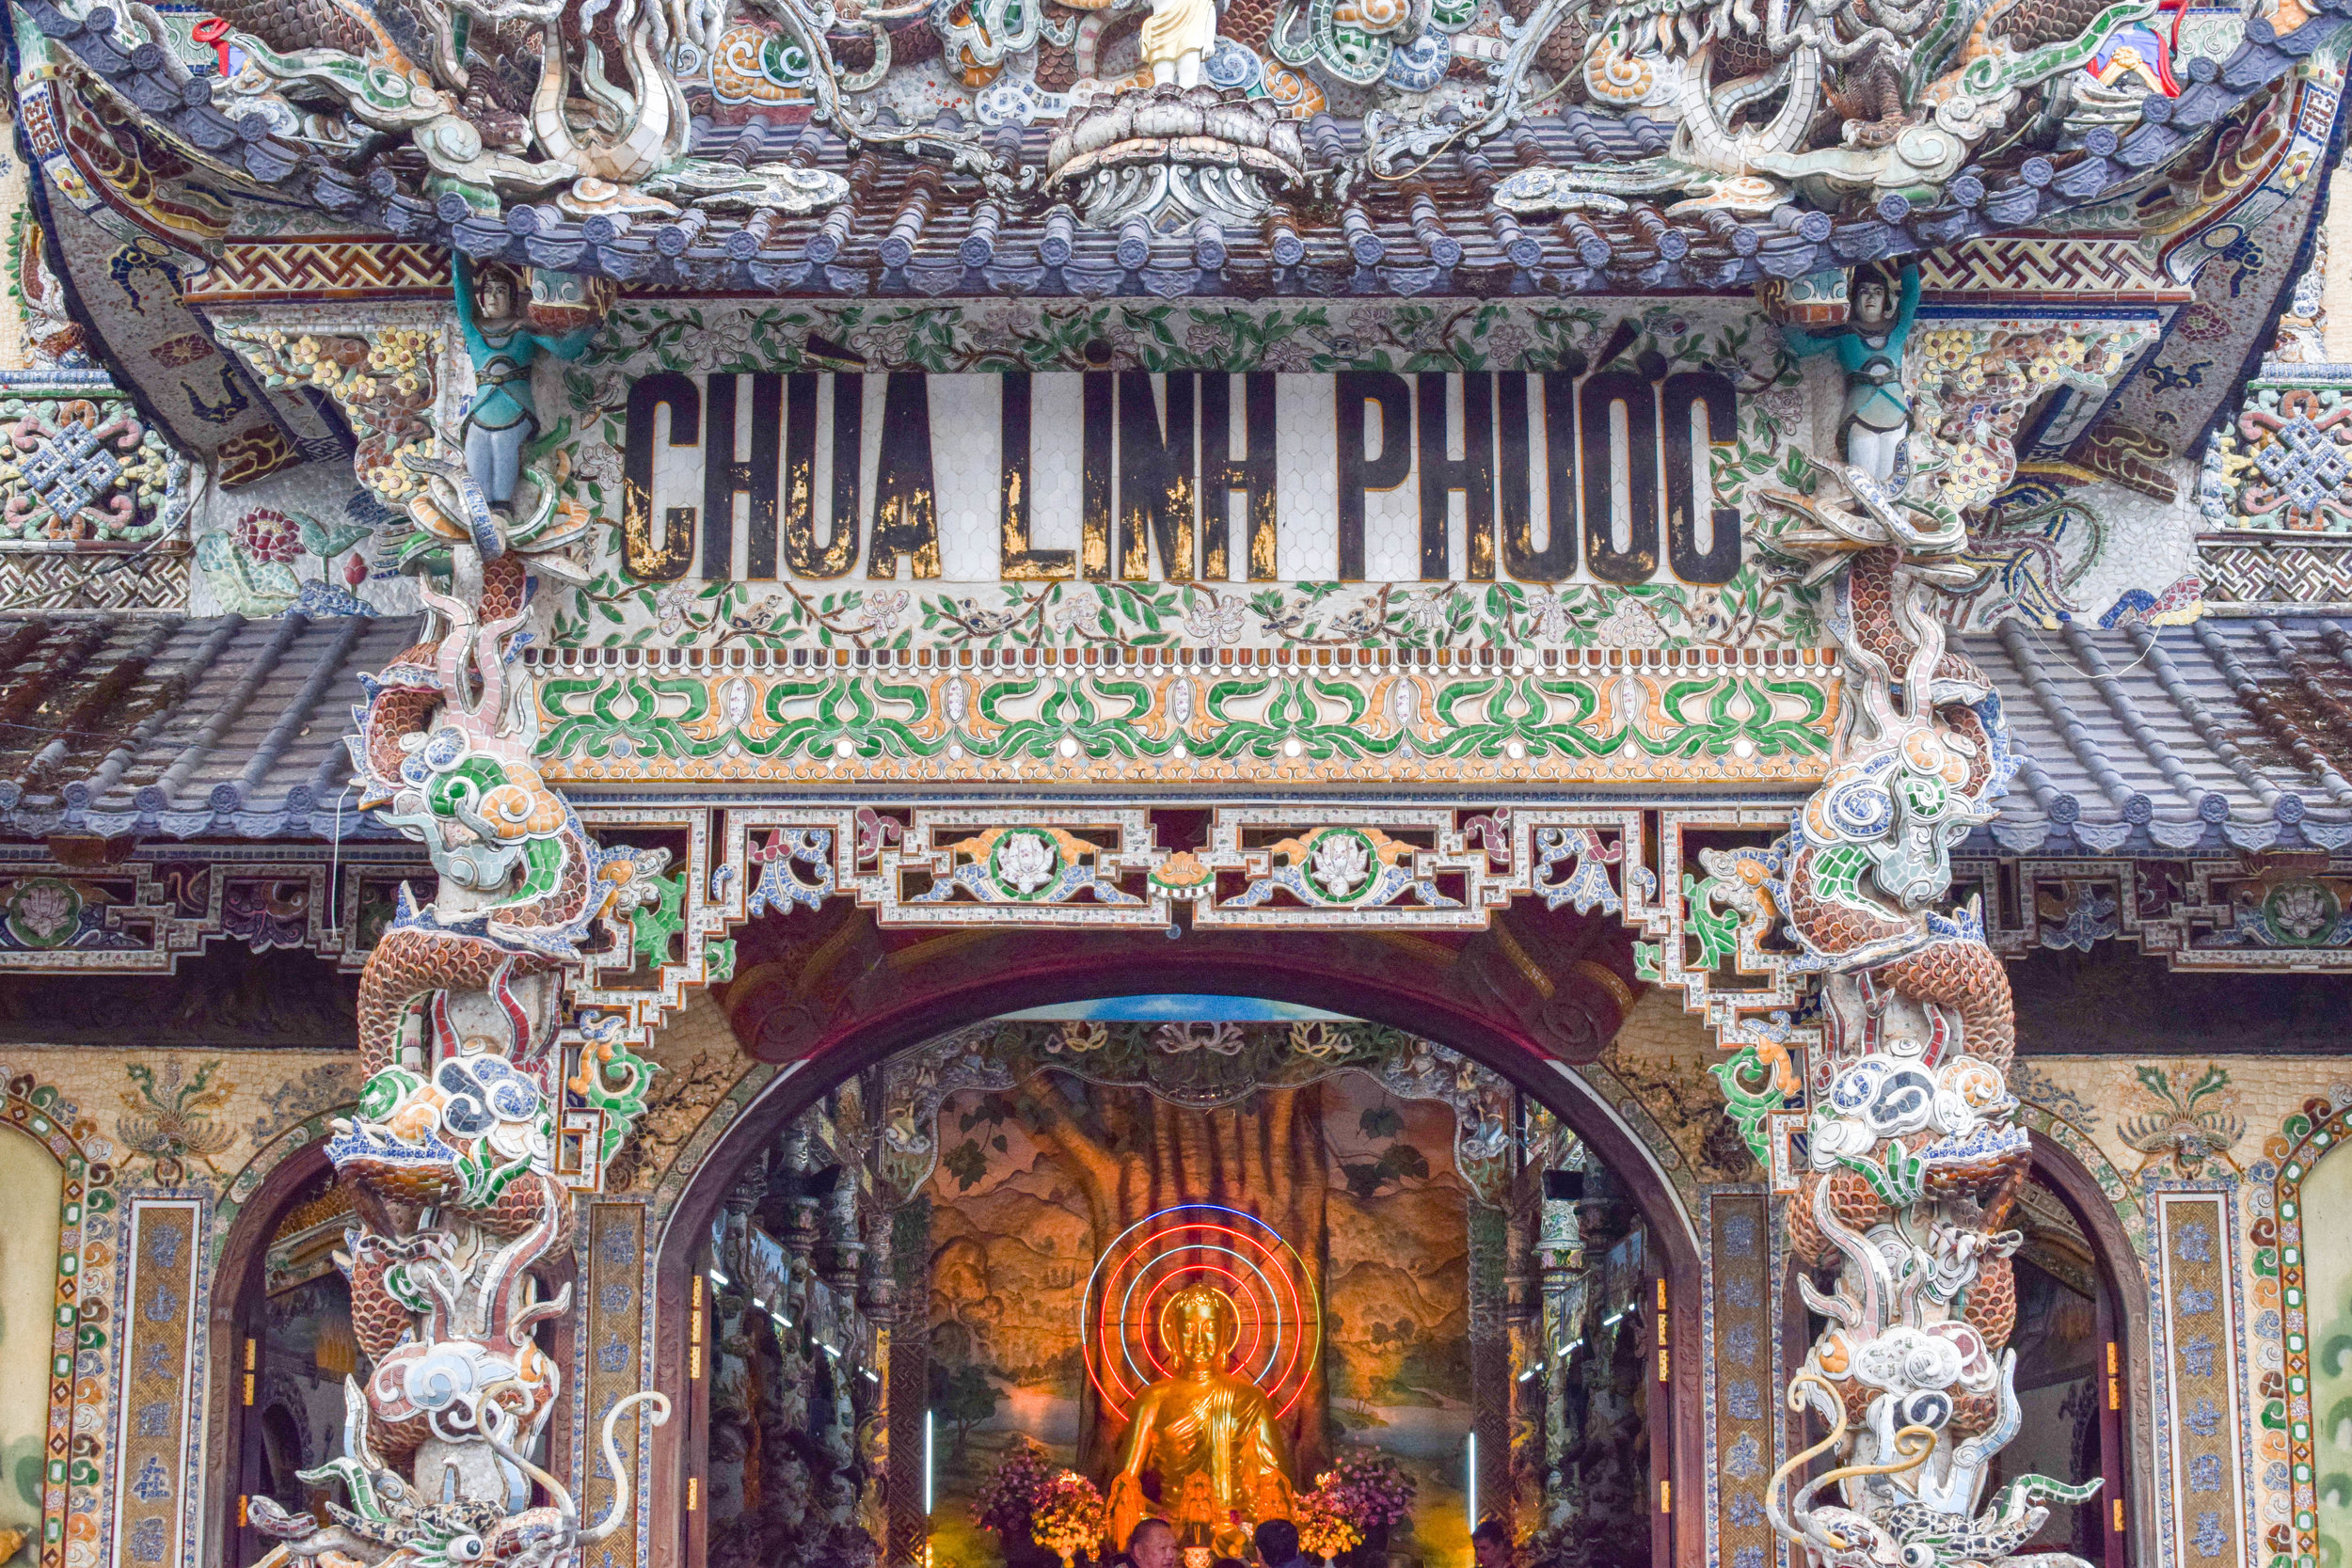 The entrance to the mesmerizing Linh Phuoc Pagoda.